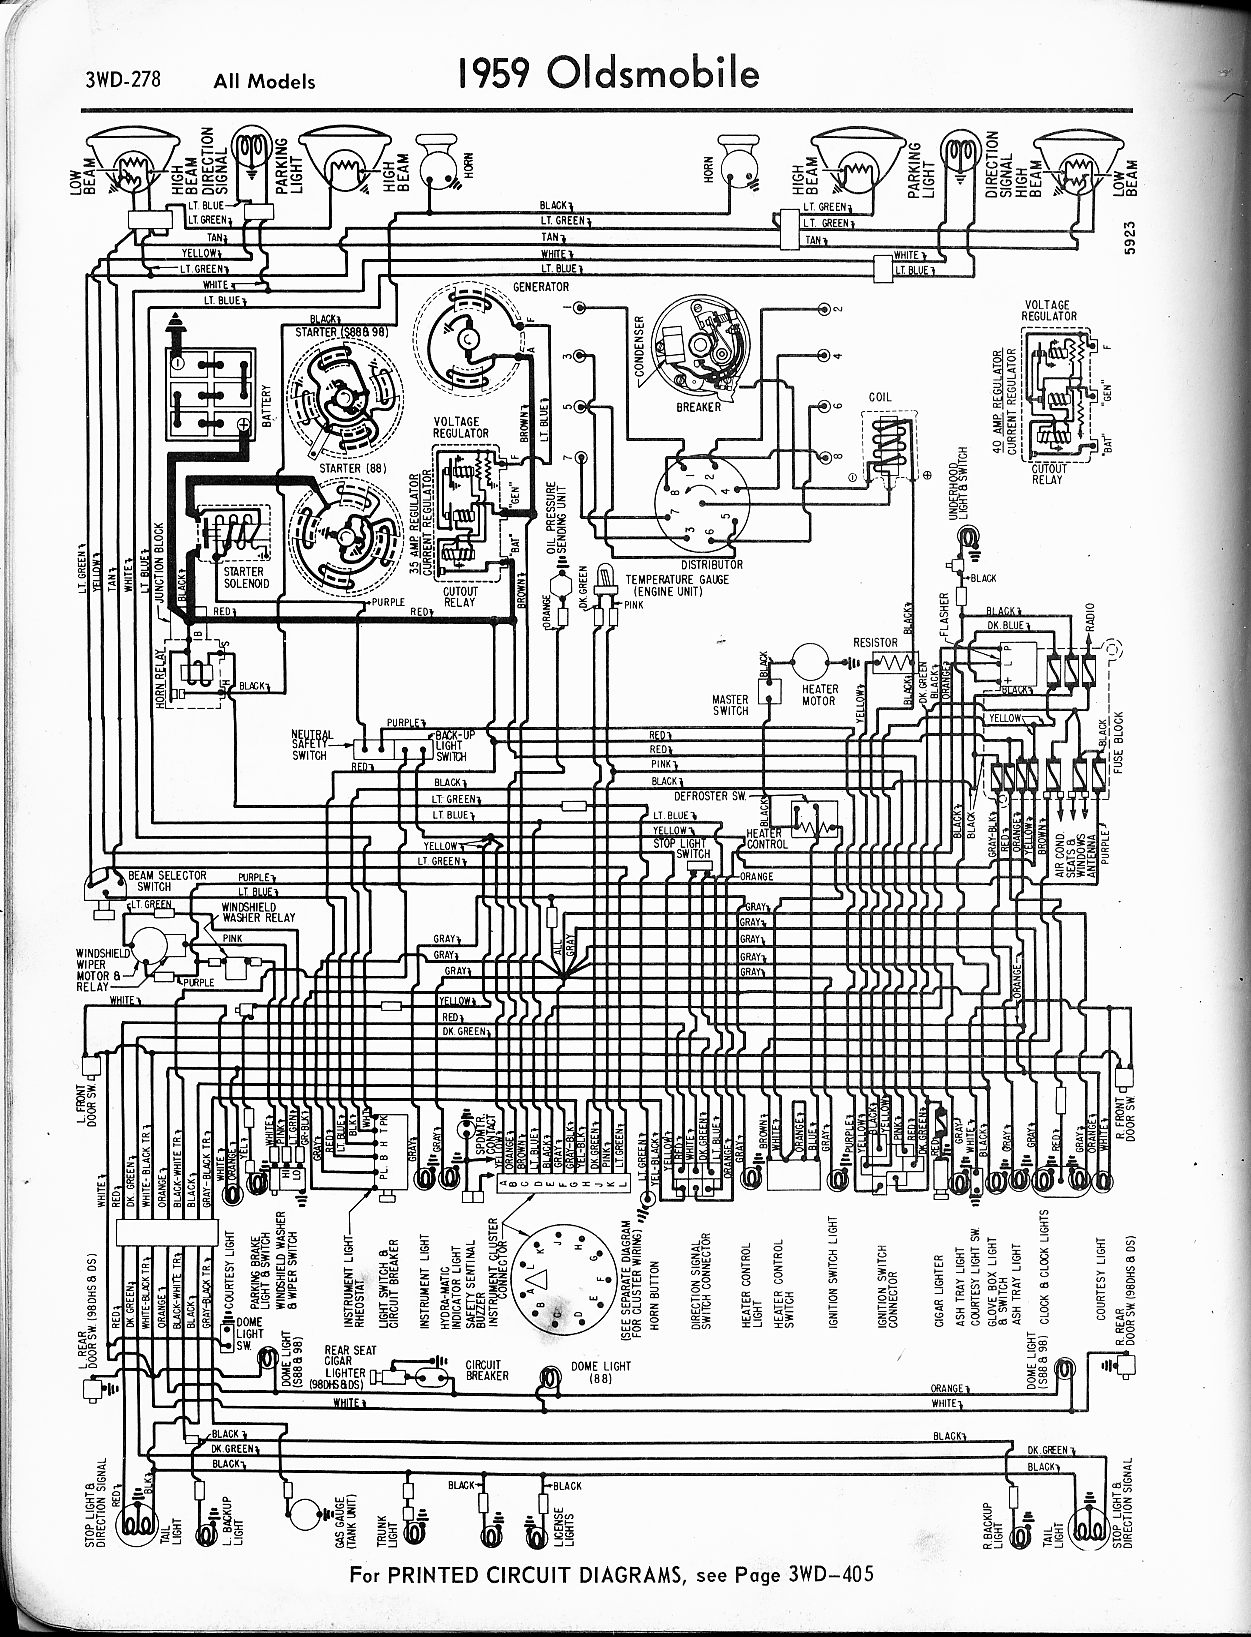 oldsmobile wiring diagrams the old car manual project rh oldcarmanualproject com 94 Cutlass Supreme Hood Release Cable 94 Cutlass Supreme Hood Mechanism